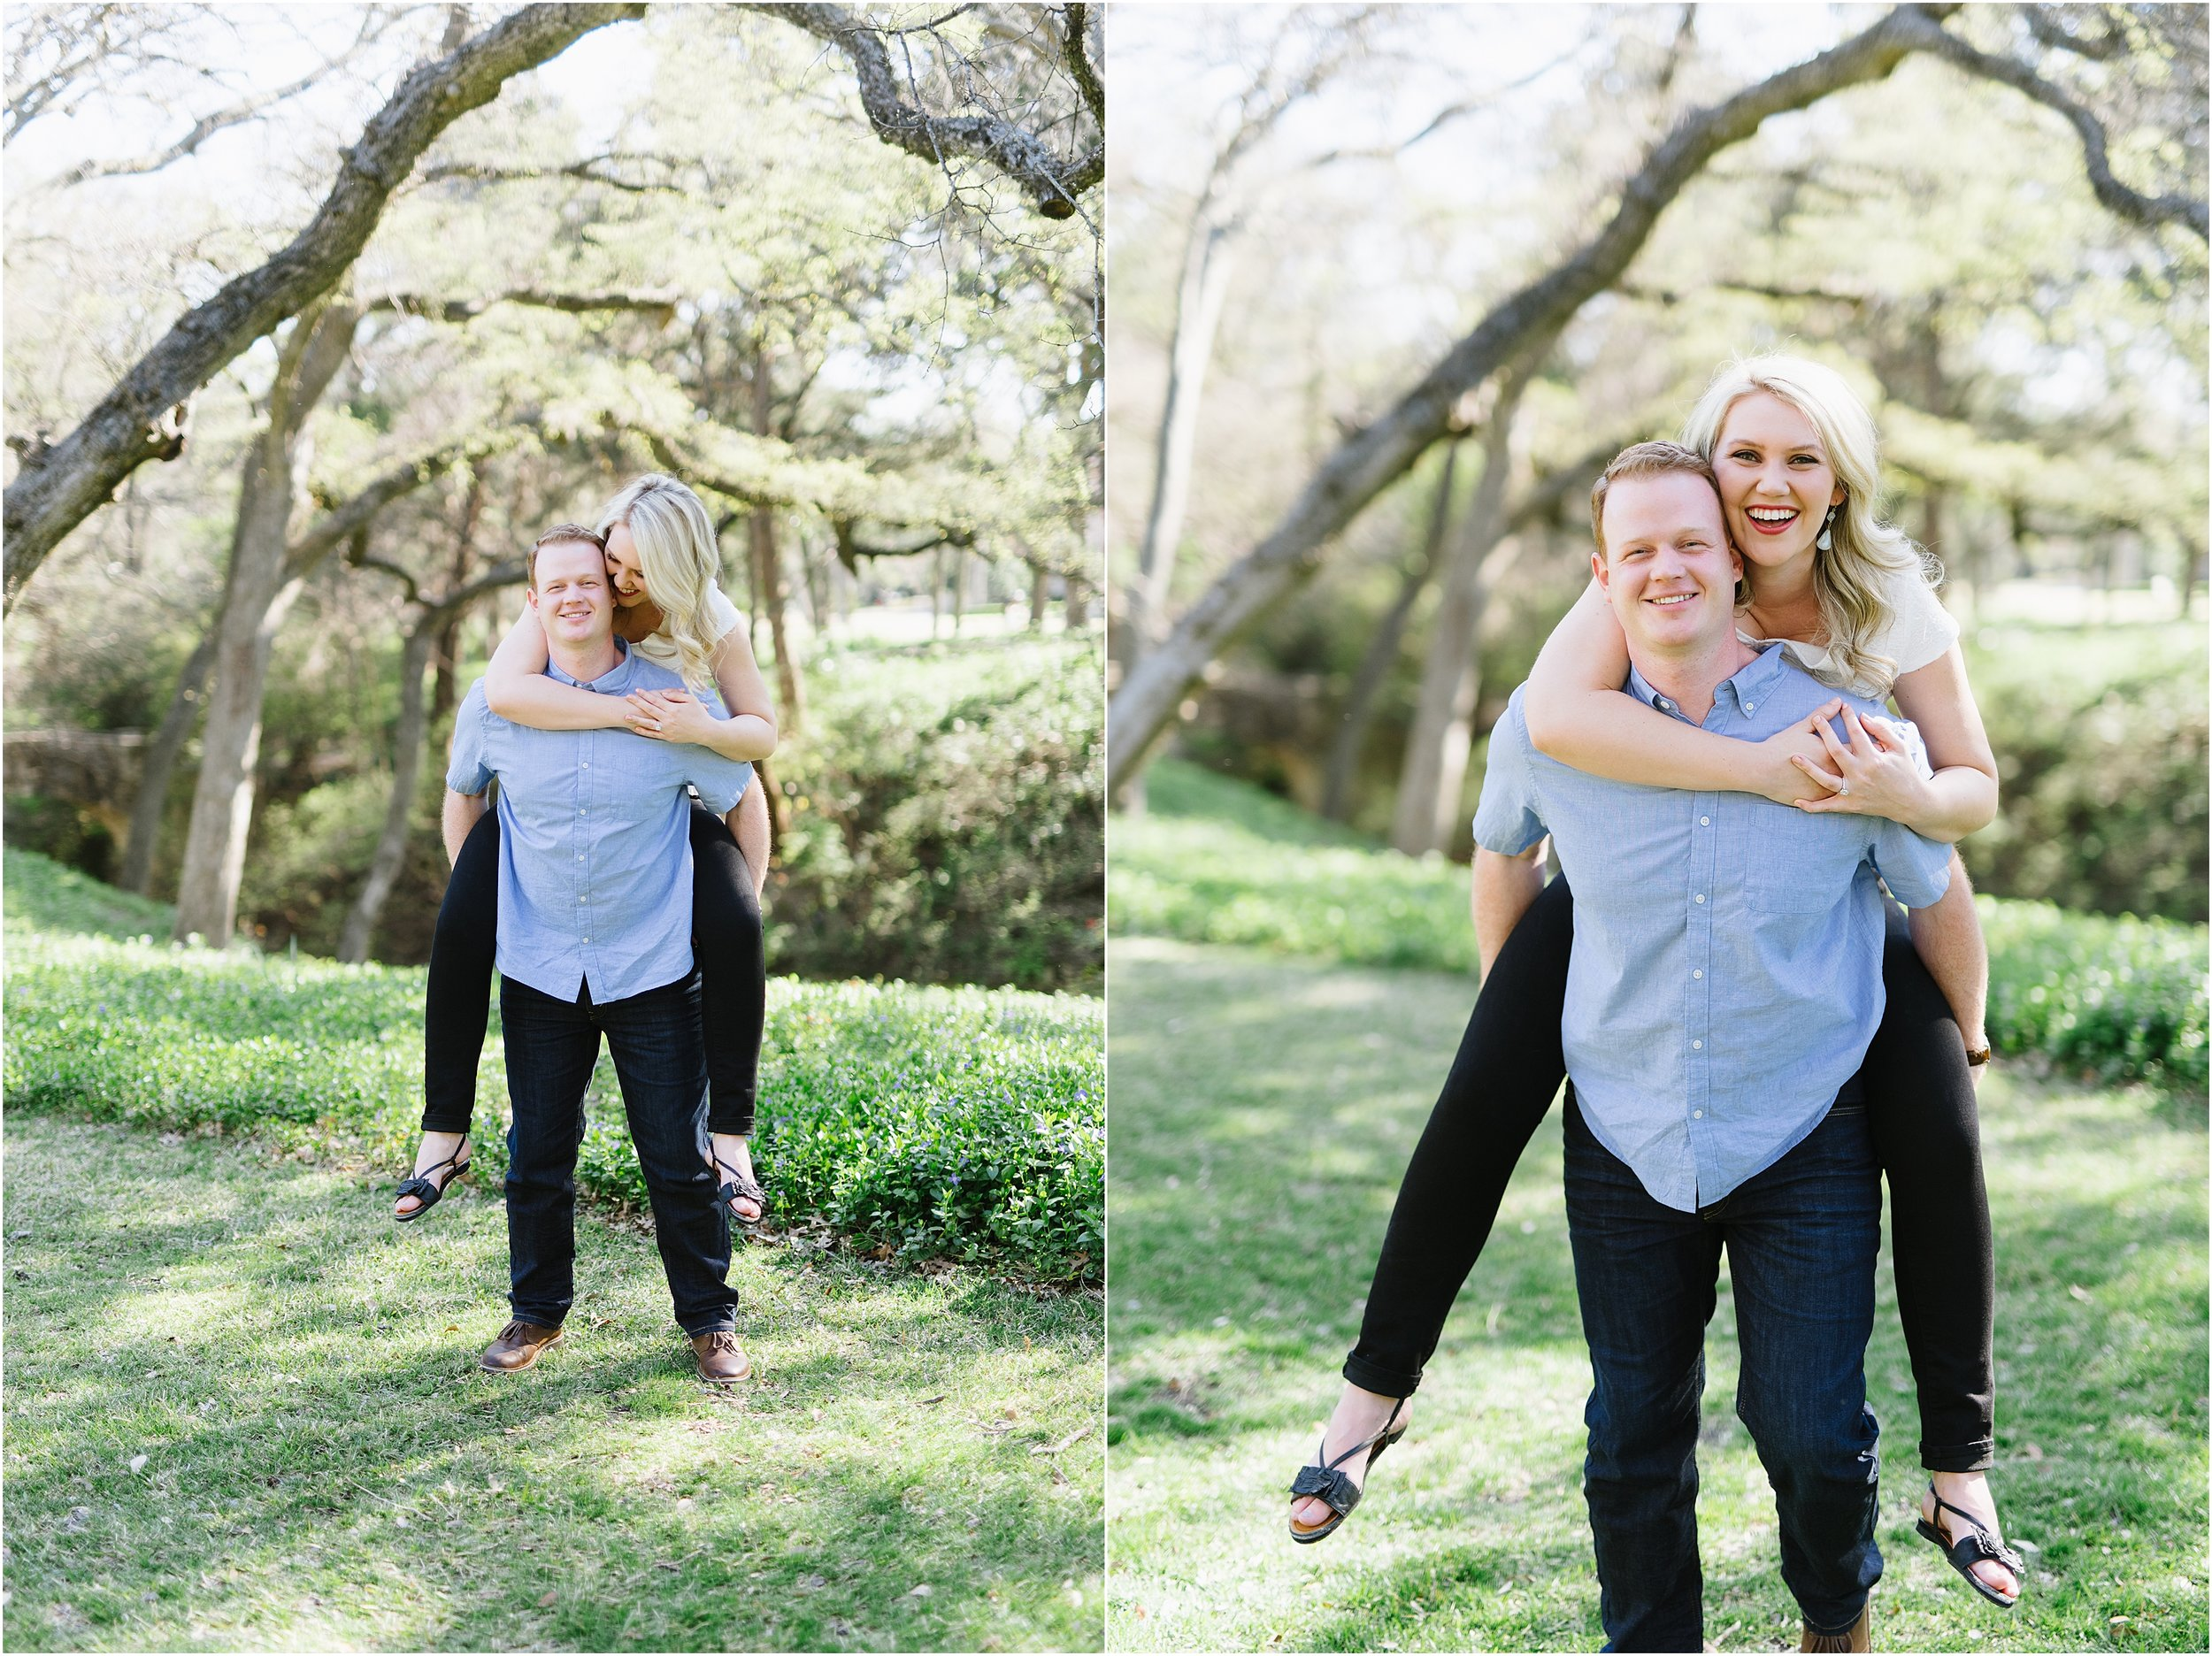 mattandjulieweddings-dallasweddingphotographers-C+J_0002.jpg